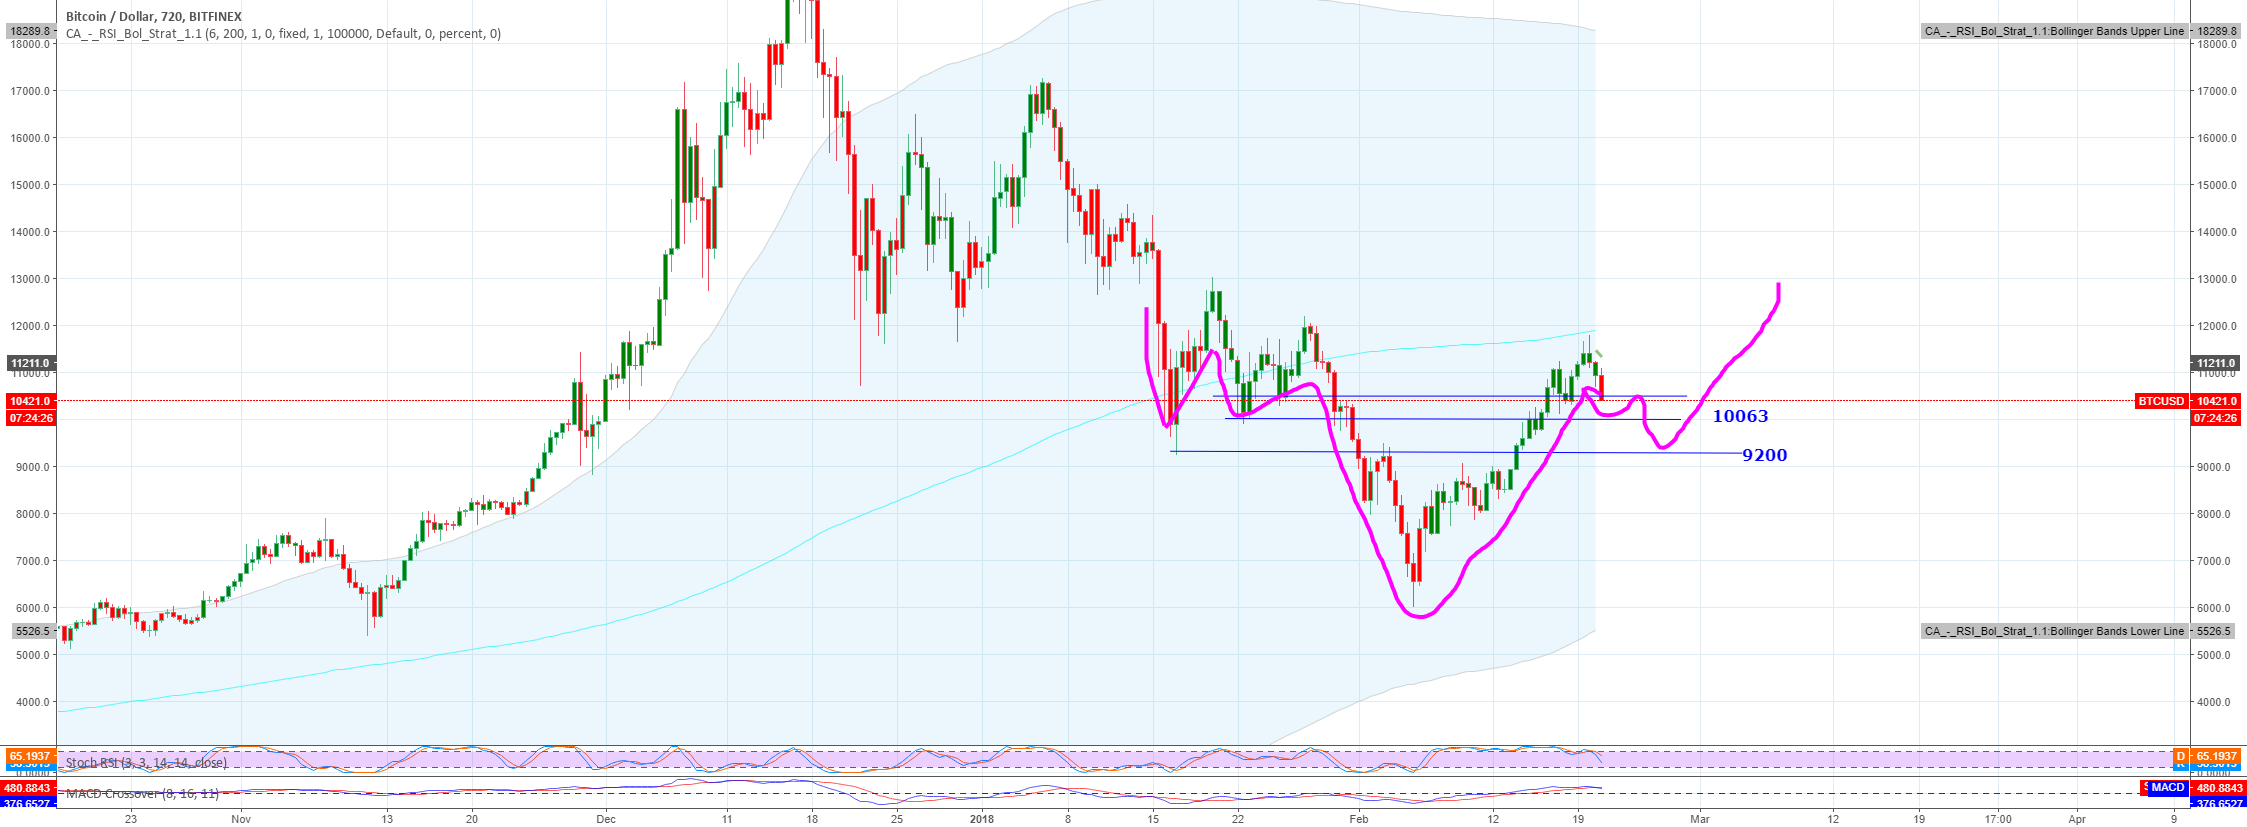 Another way of looking at it, Inverse head and shoulders upwards